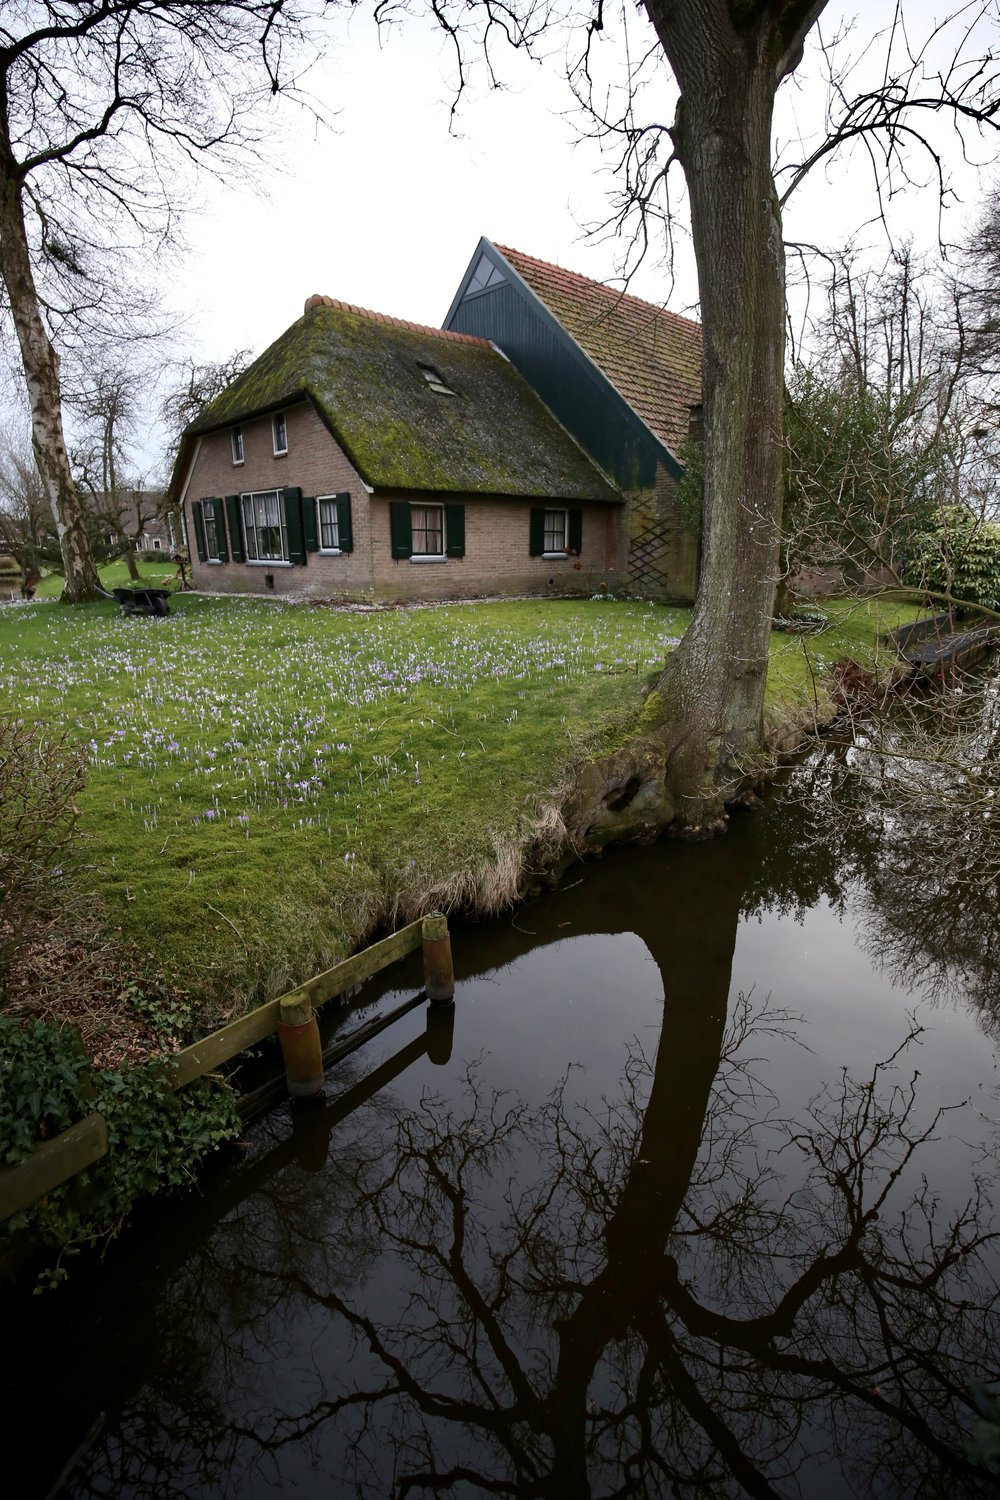 Beautiful reflections of winter in the canals of Giethoorn village - a water borne village.